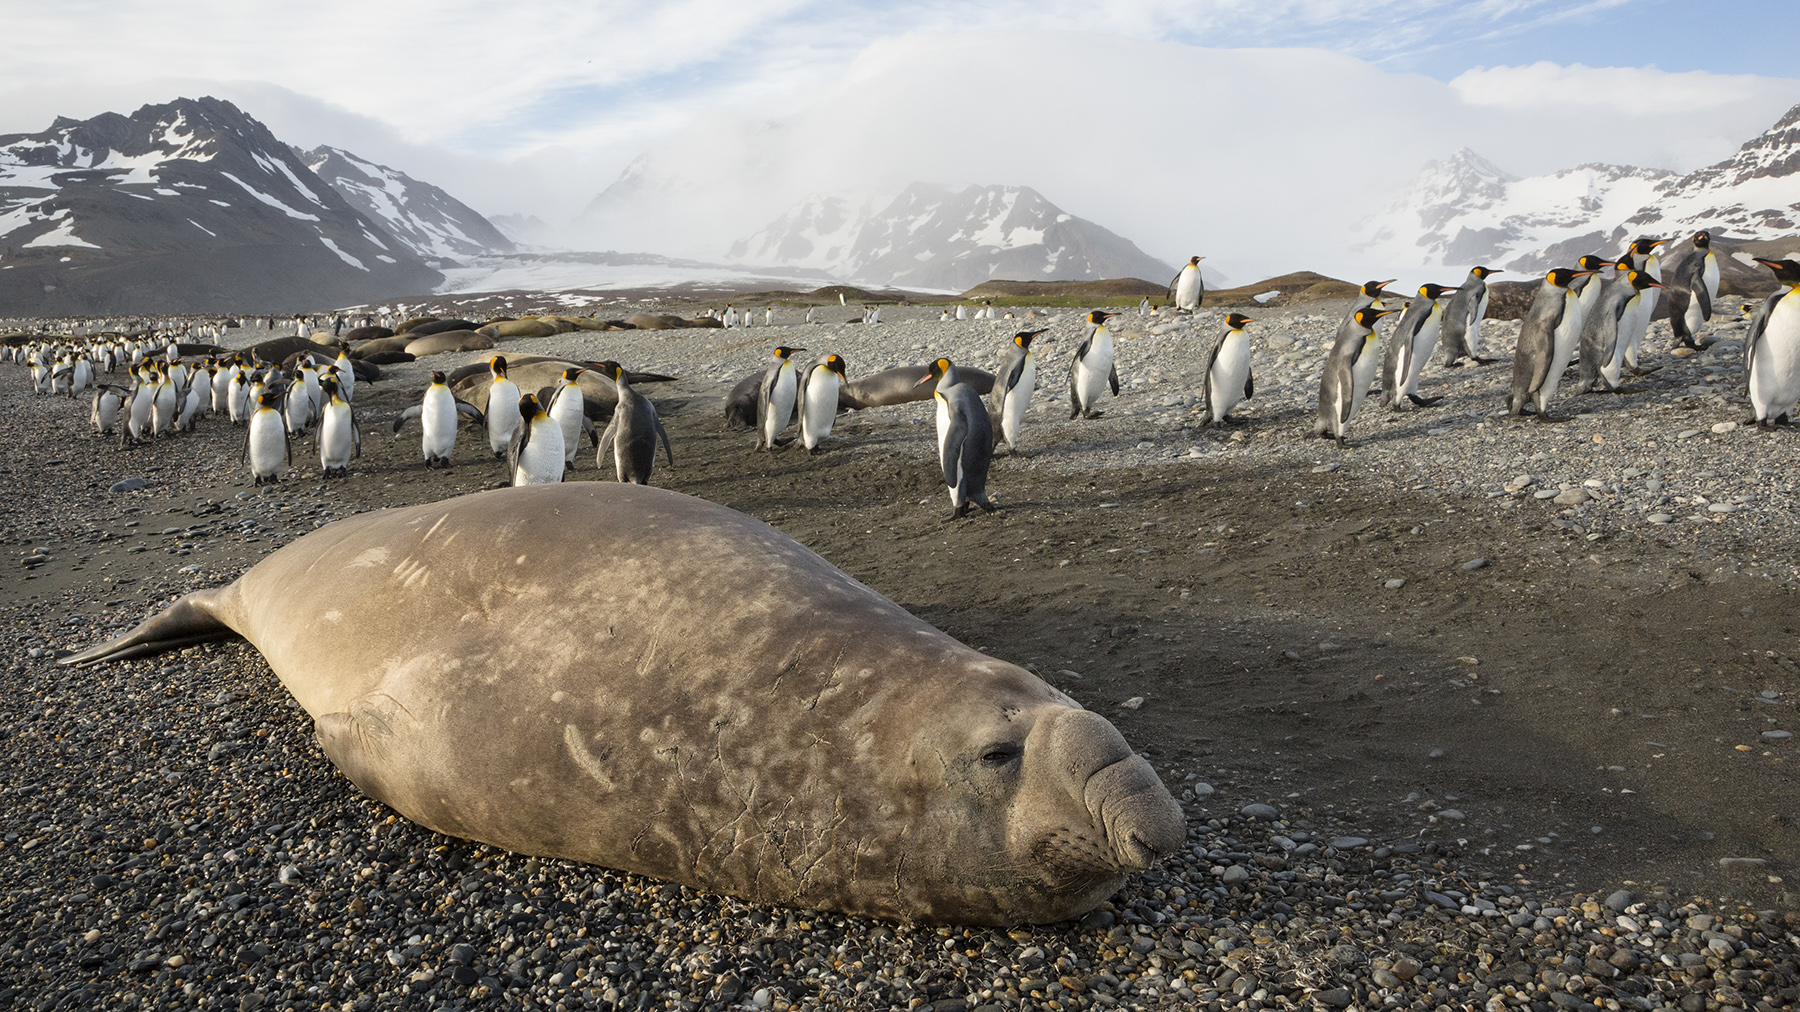 Brian_Jones_Elephant Seal Mating Season_Elephant Seal Resting_1.jpg